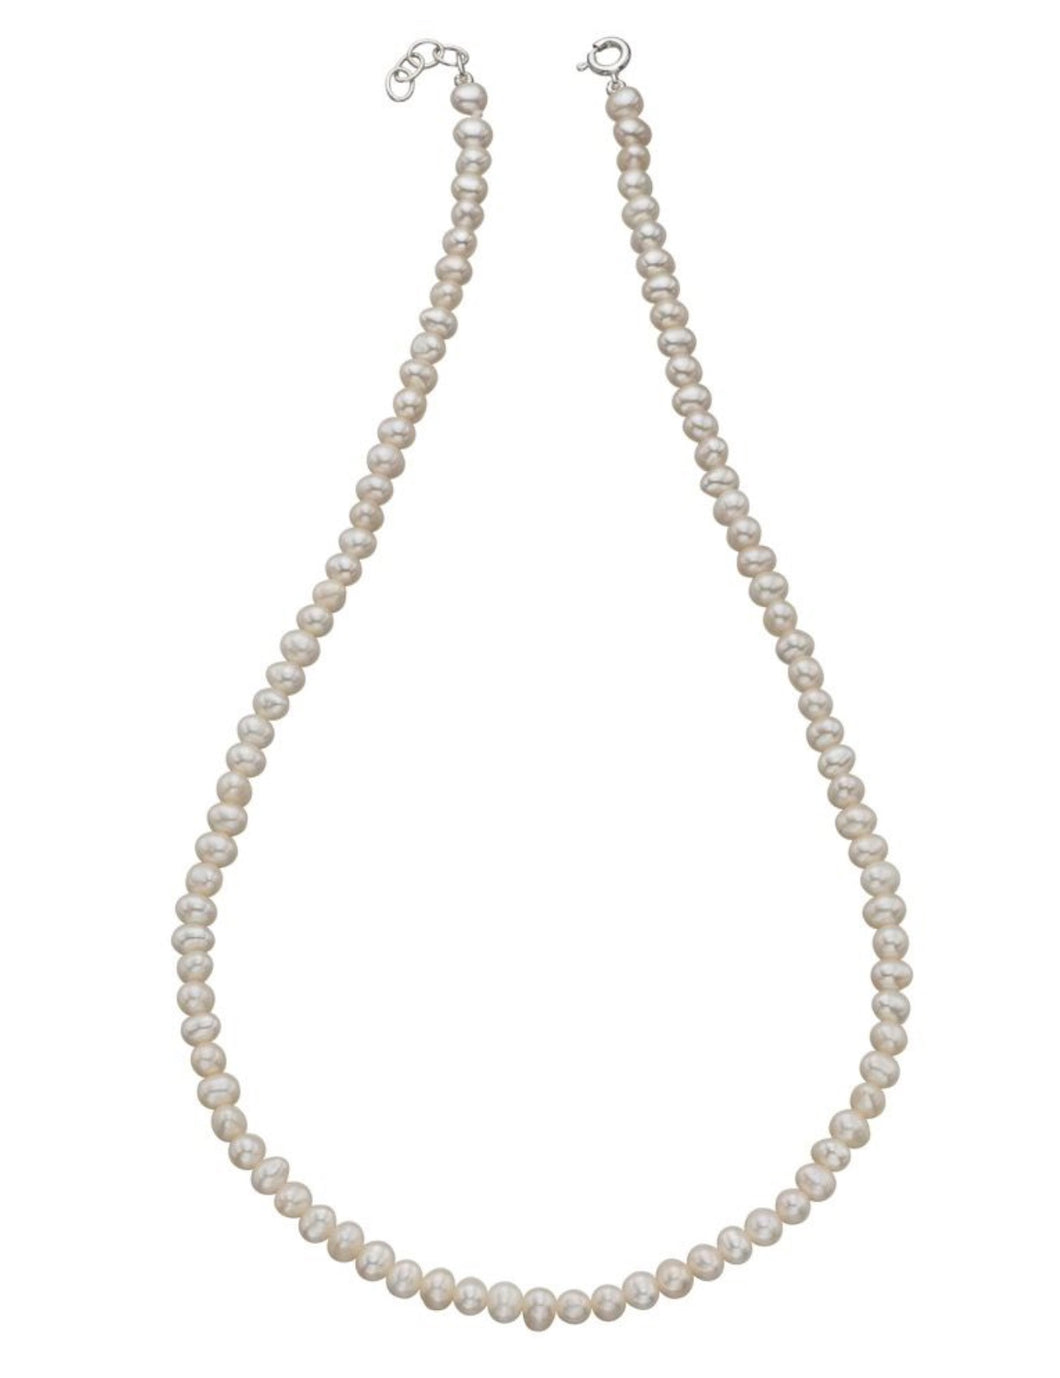 Silver - Elements White Freshwater Pearl Single Row Necklace